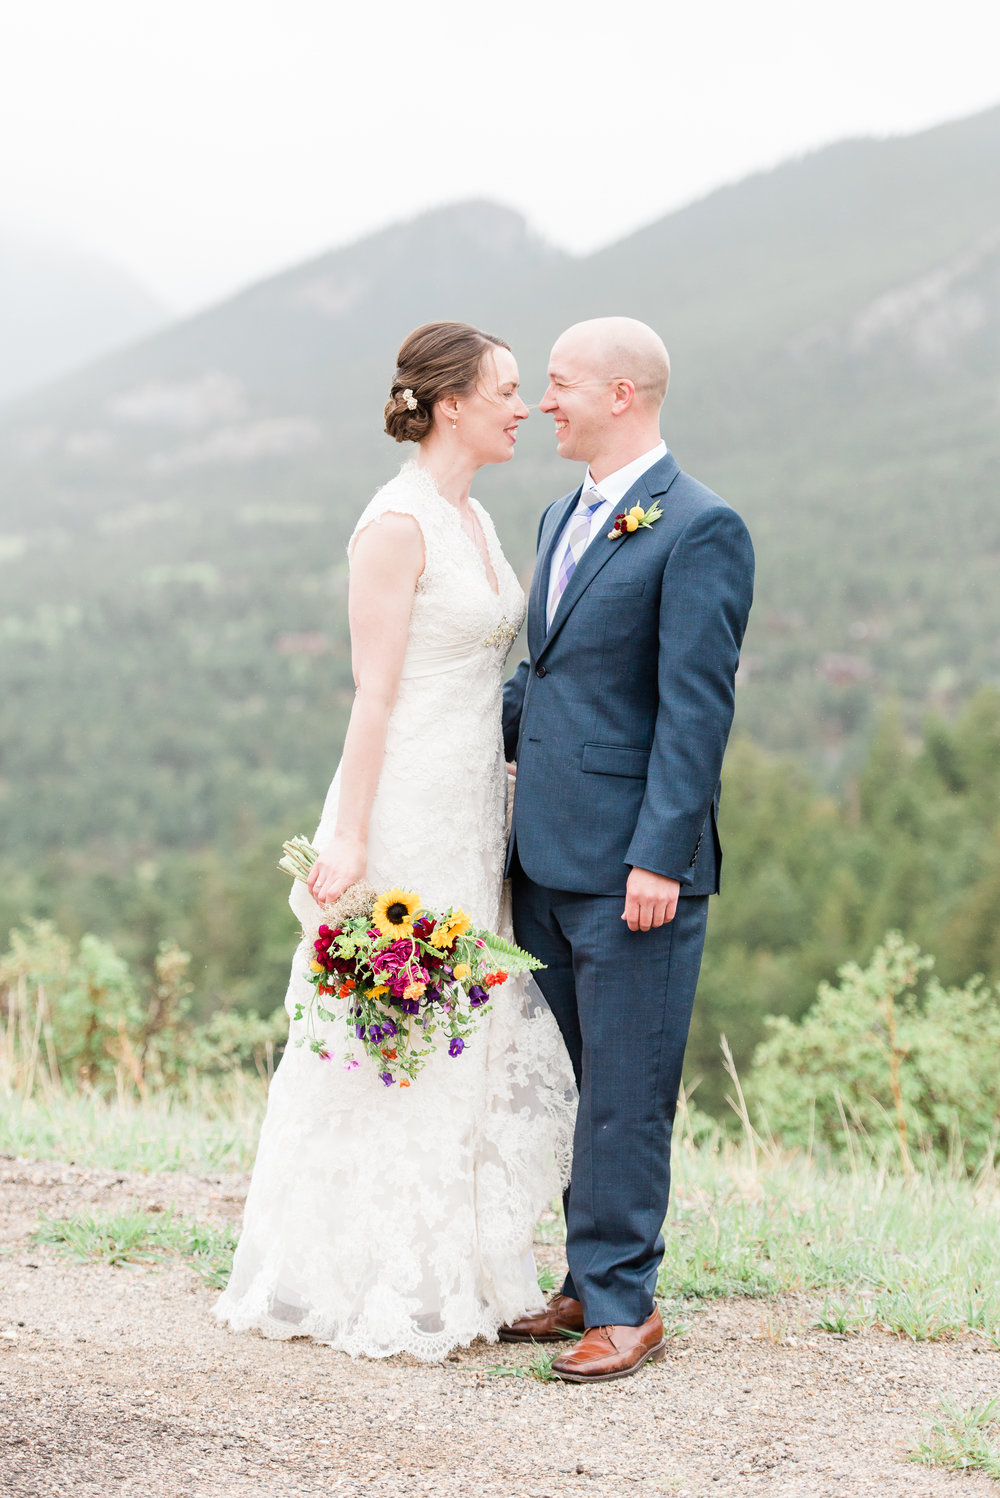 AshleighMillerPhotography-Weddings-Emily-Joe-EstesPark-Colorao-2165.jpg